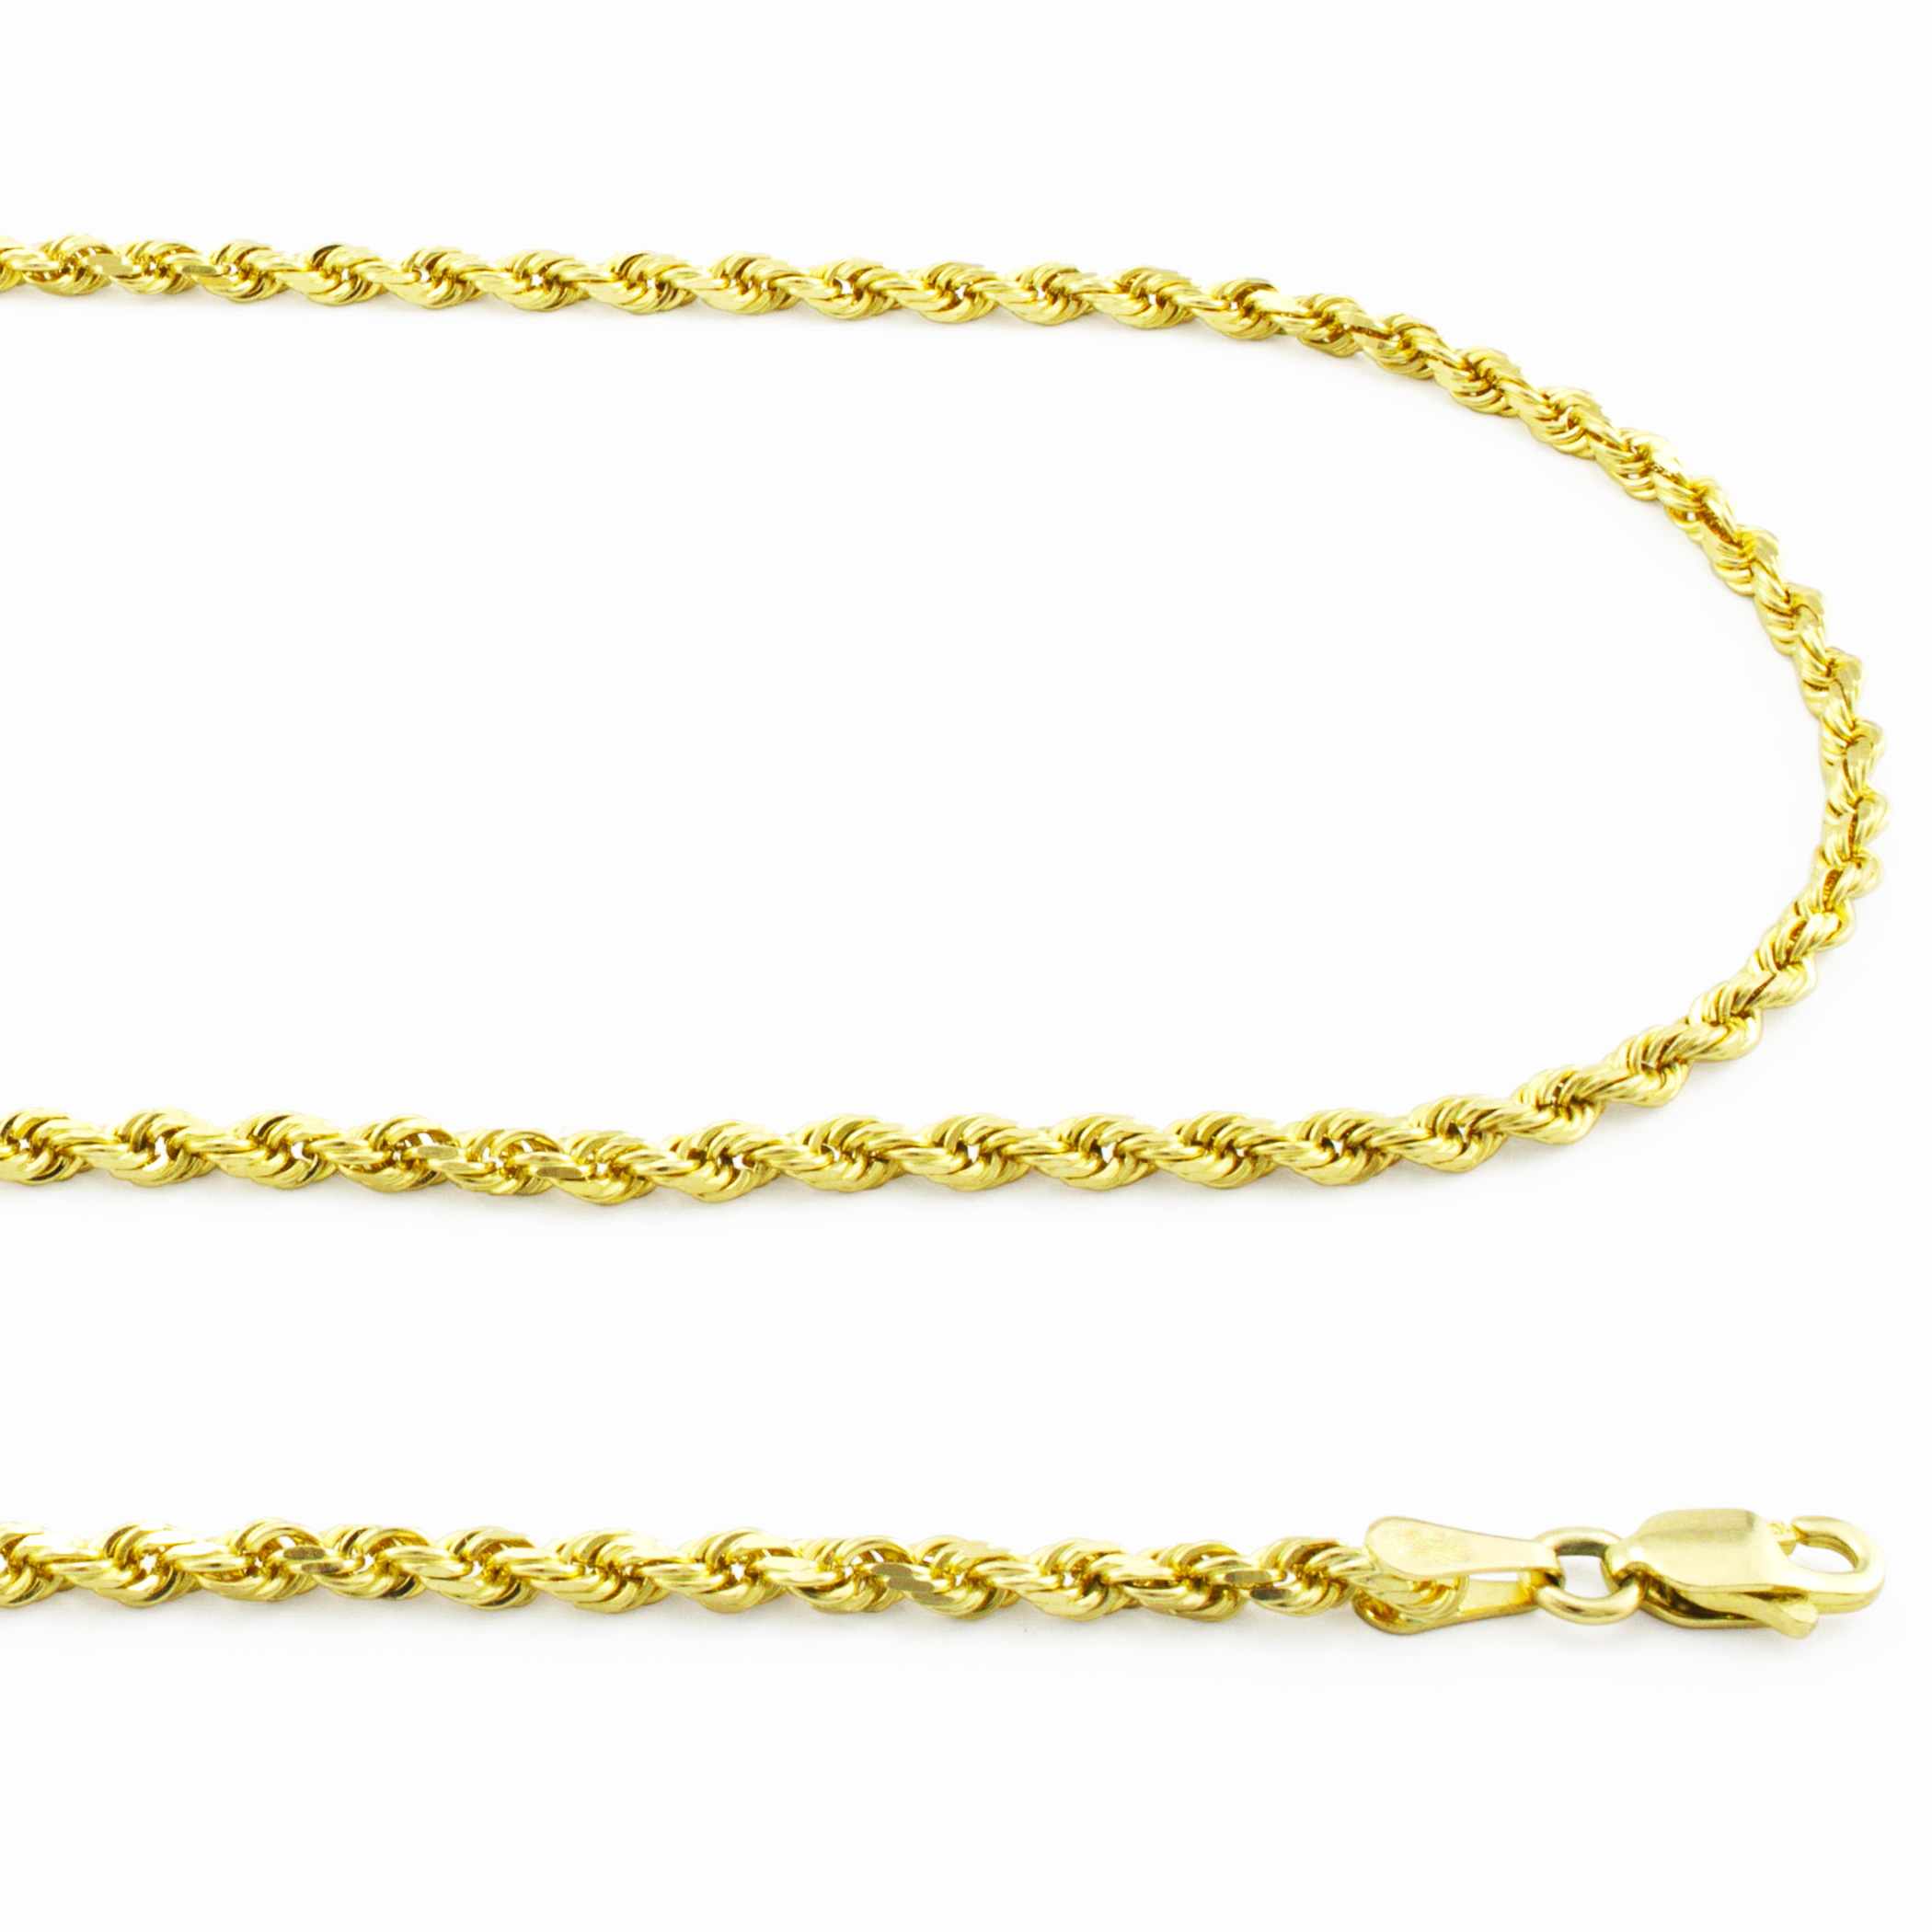 Real-14K-Yellow-Gold-2-5mm-Diamond-Cut-Rope-Chain-Link-Bracelet-Anklet-7-034-8-034-9-034 thumbnail 21